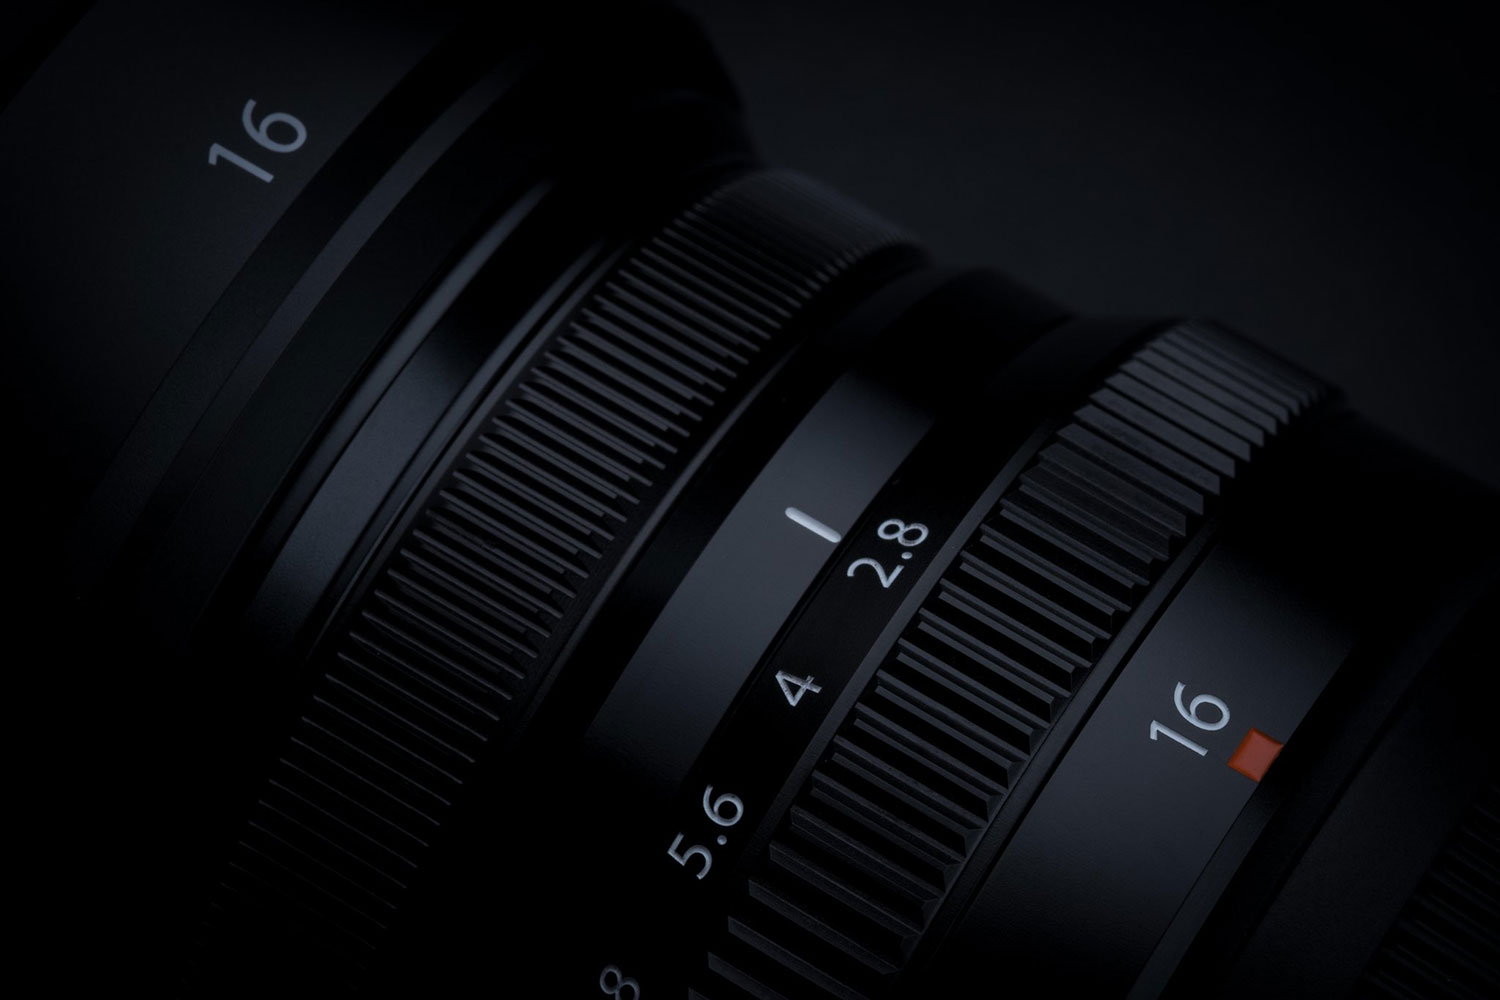 JUST ANNOUNCED: Fujifilm launches the FUJINON XF16mmF2.8 R WR